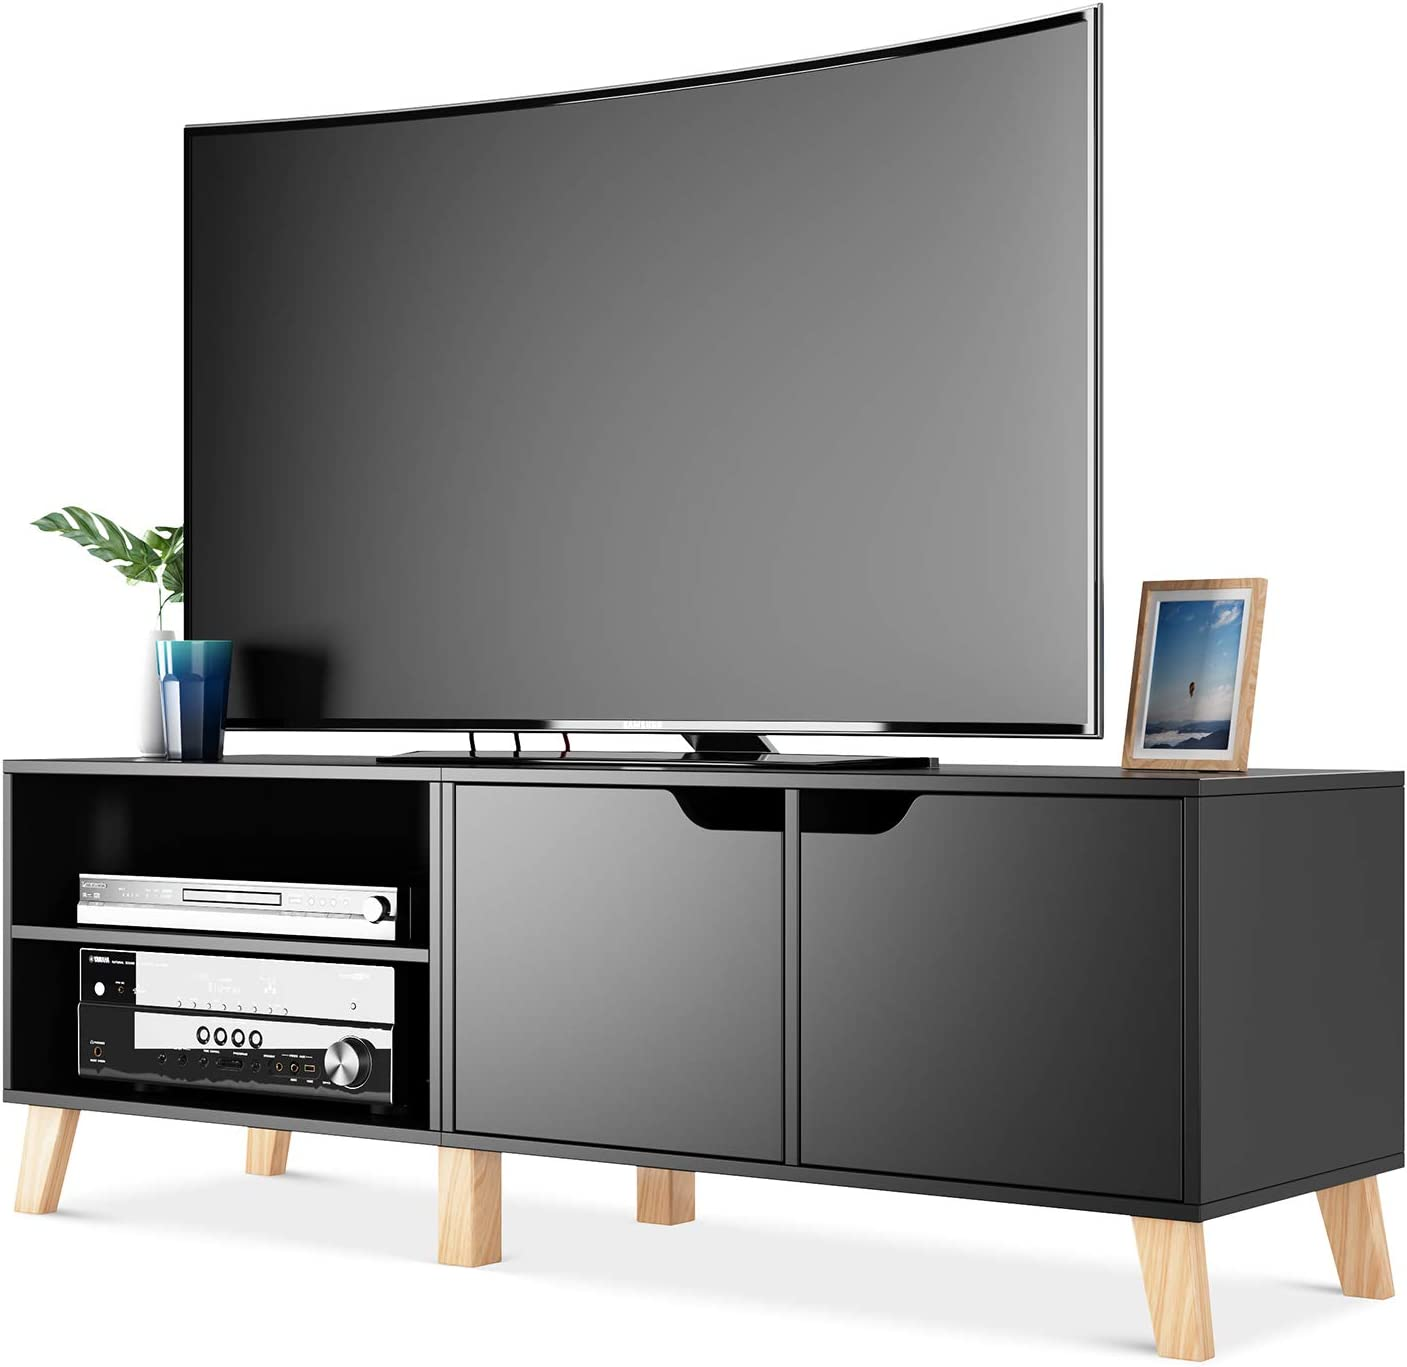 Homfa 55 In Tv Stand With 2 Doors And Shelves Modern Console Entertainment Center Media Console Storage Cabinet For Living Room Home Black Furniture Decor